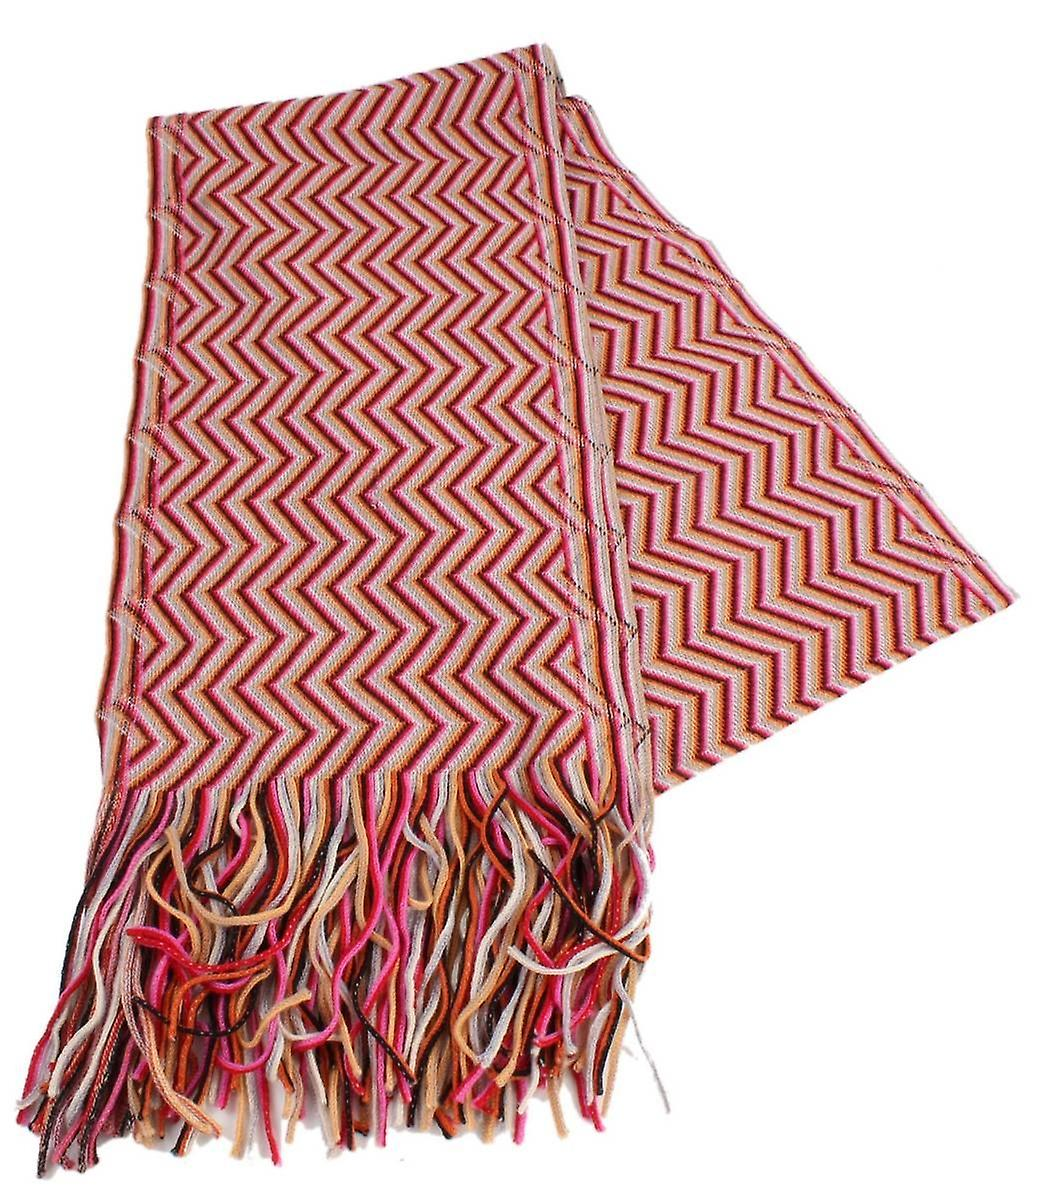 Bassin and marron Peate Chevron Wool Scarf - rouge Beige